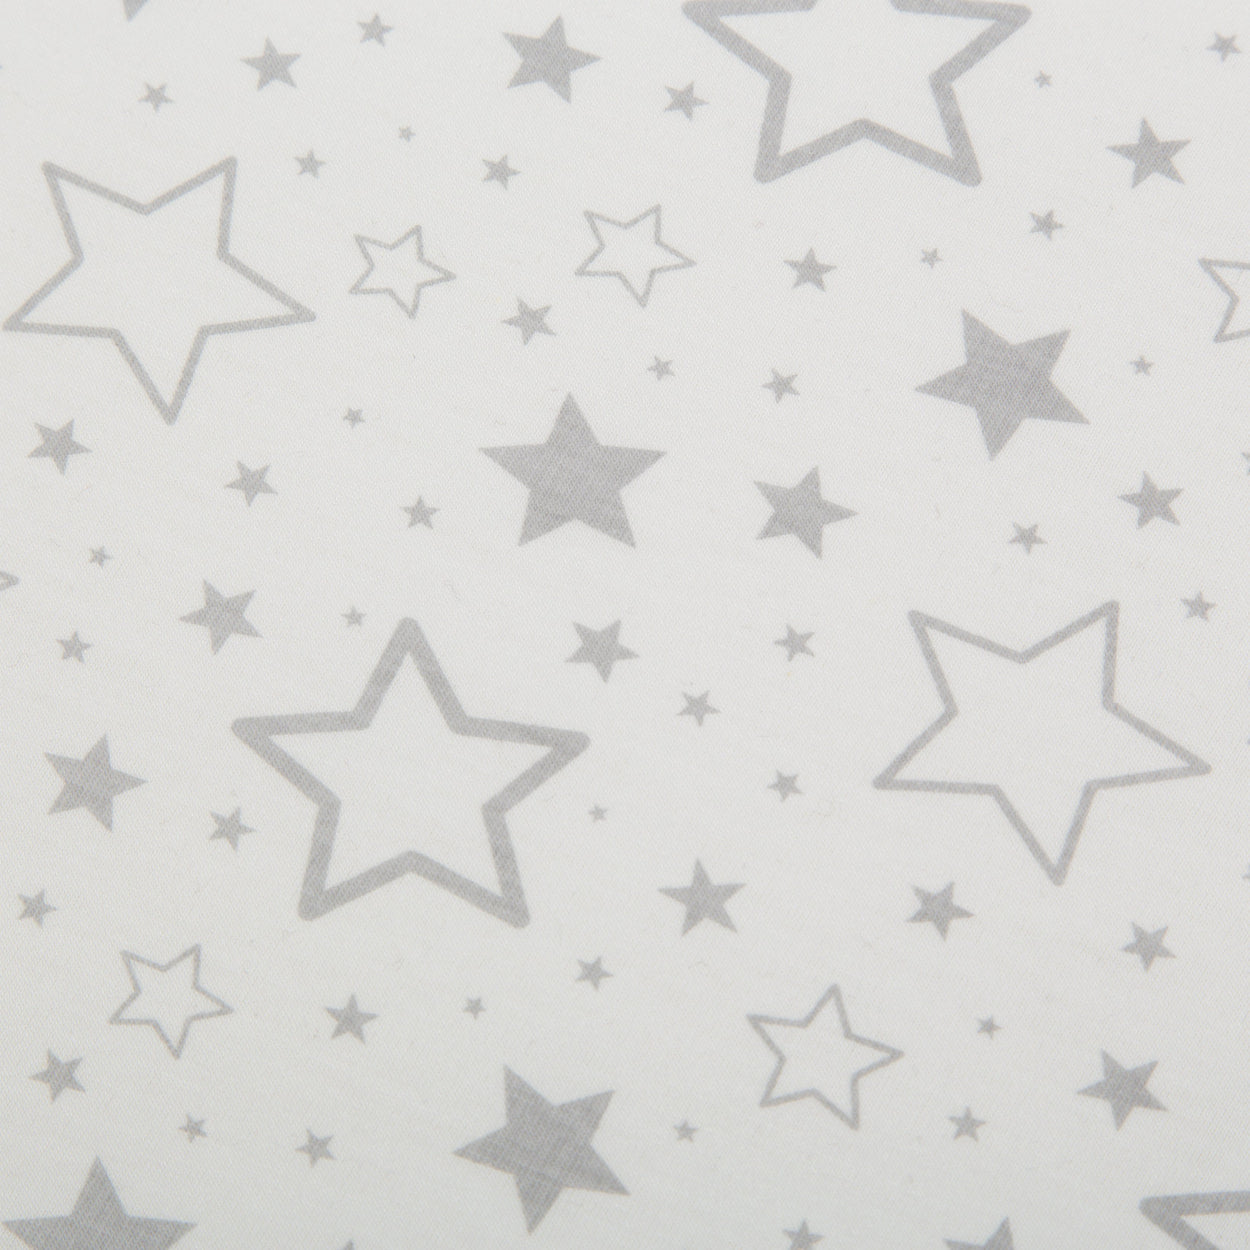 comfi mum memory foam nursing suport pillow stars